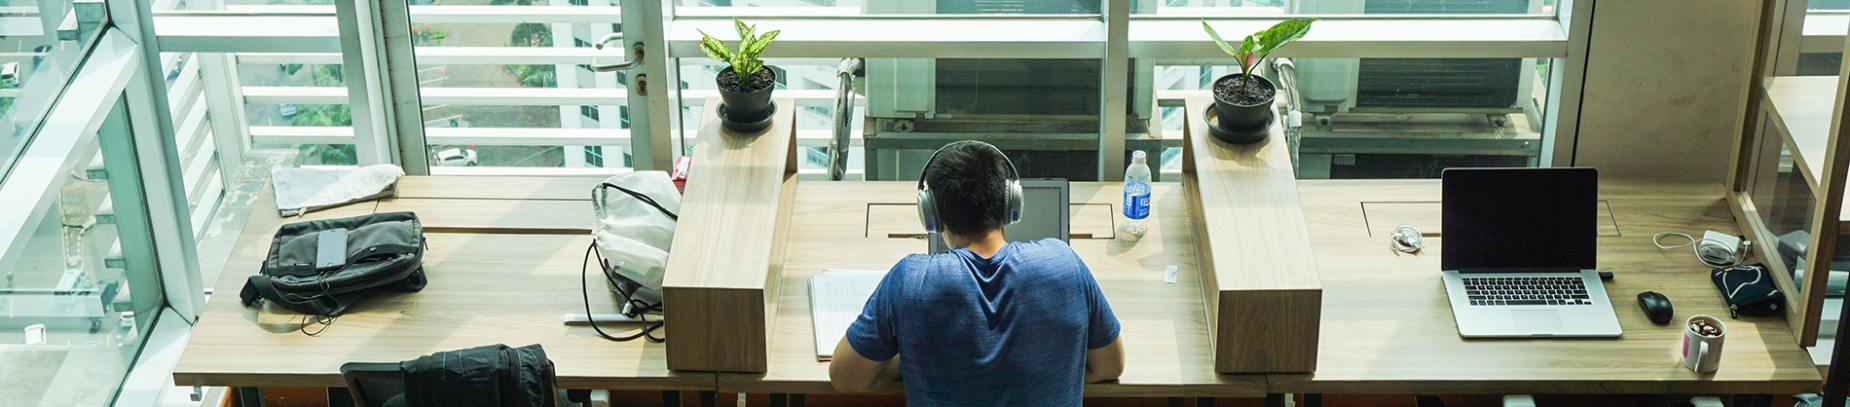 A man sat at a desk with headphones on